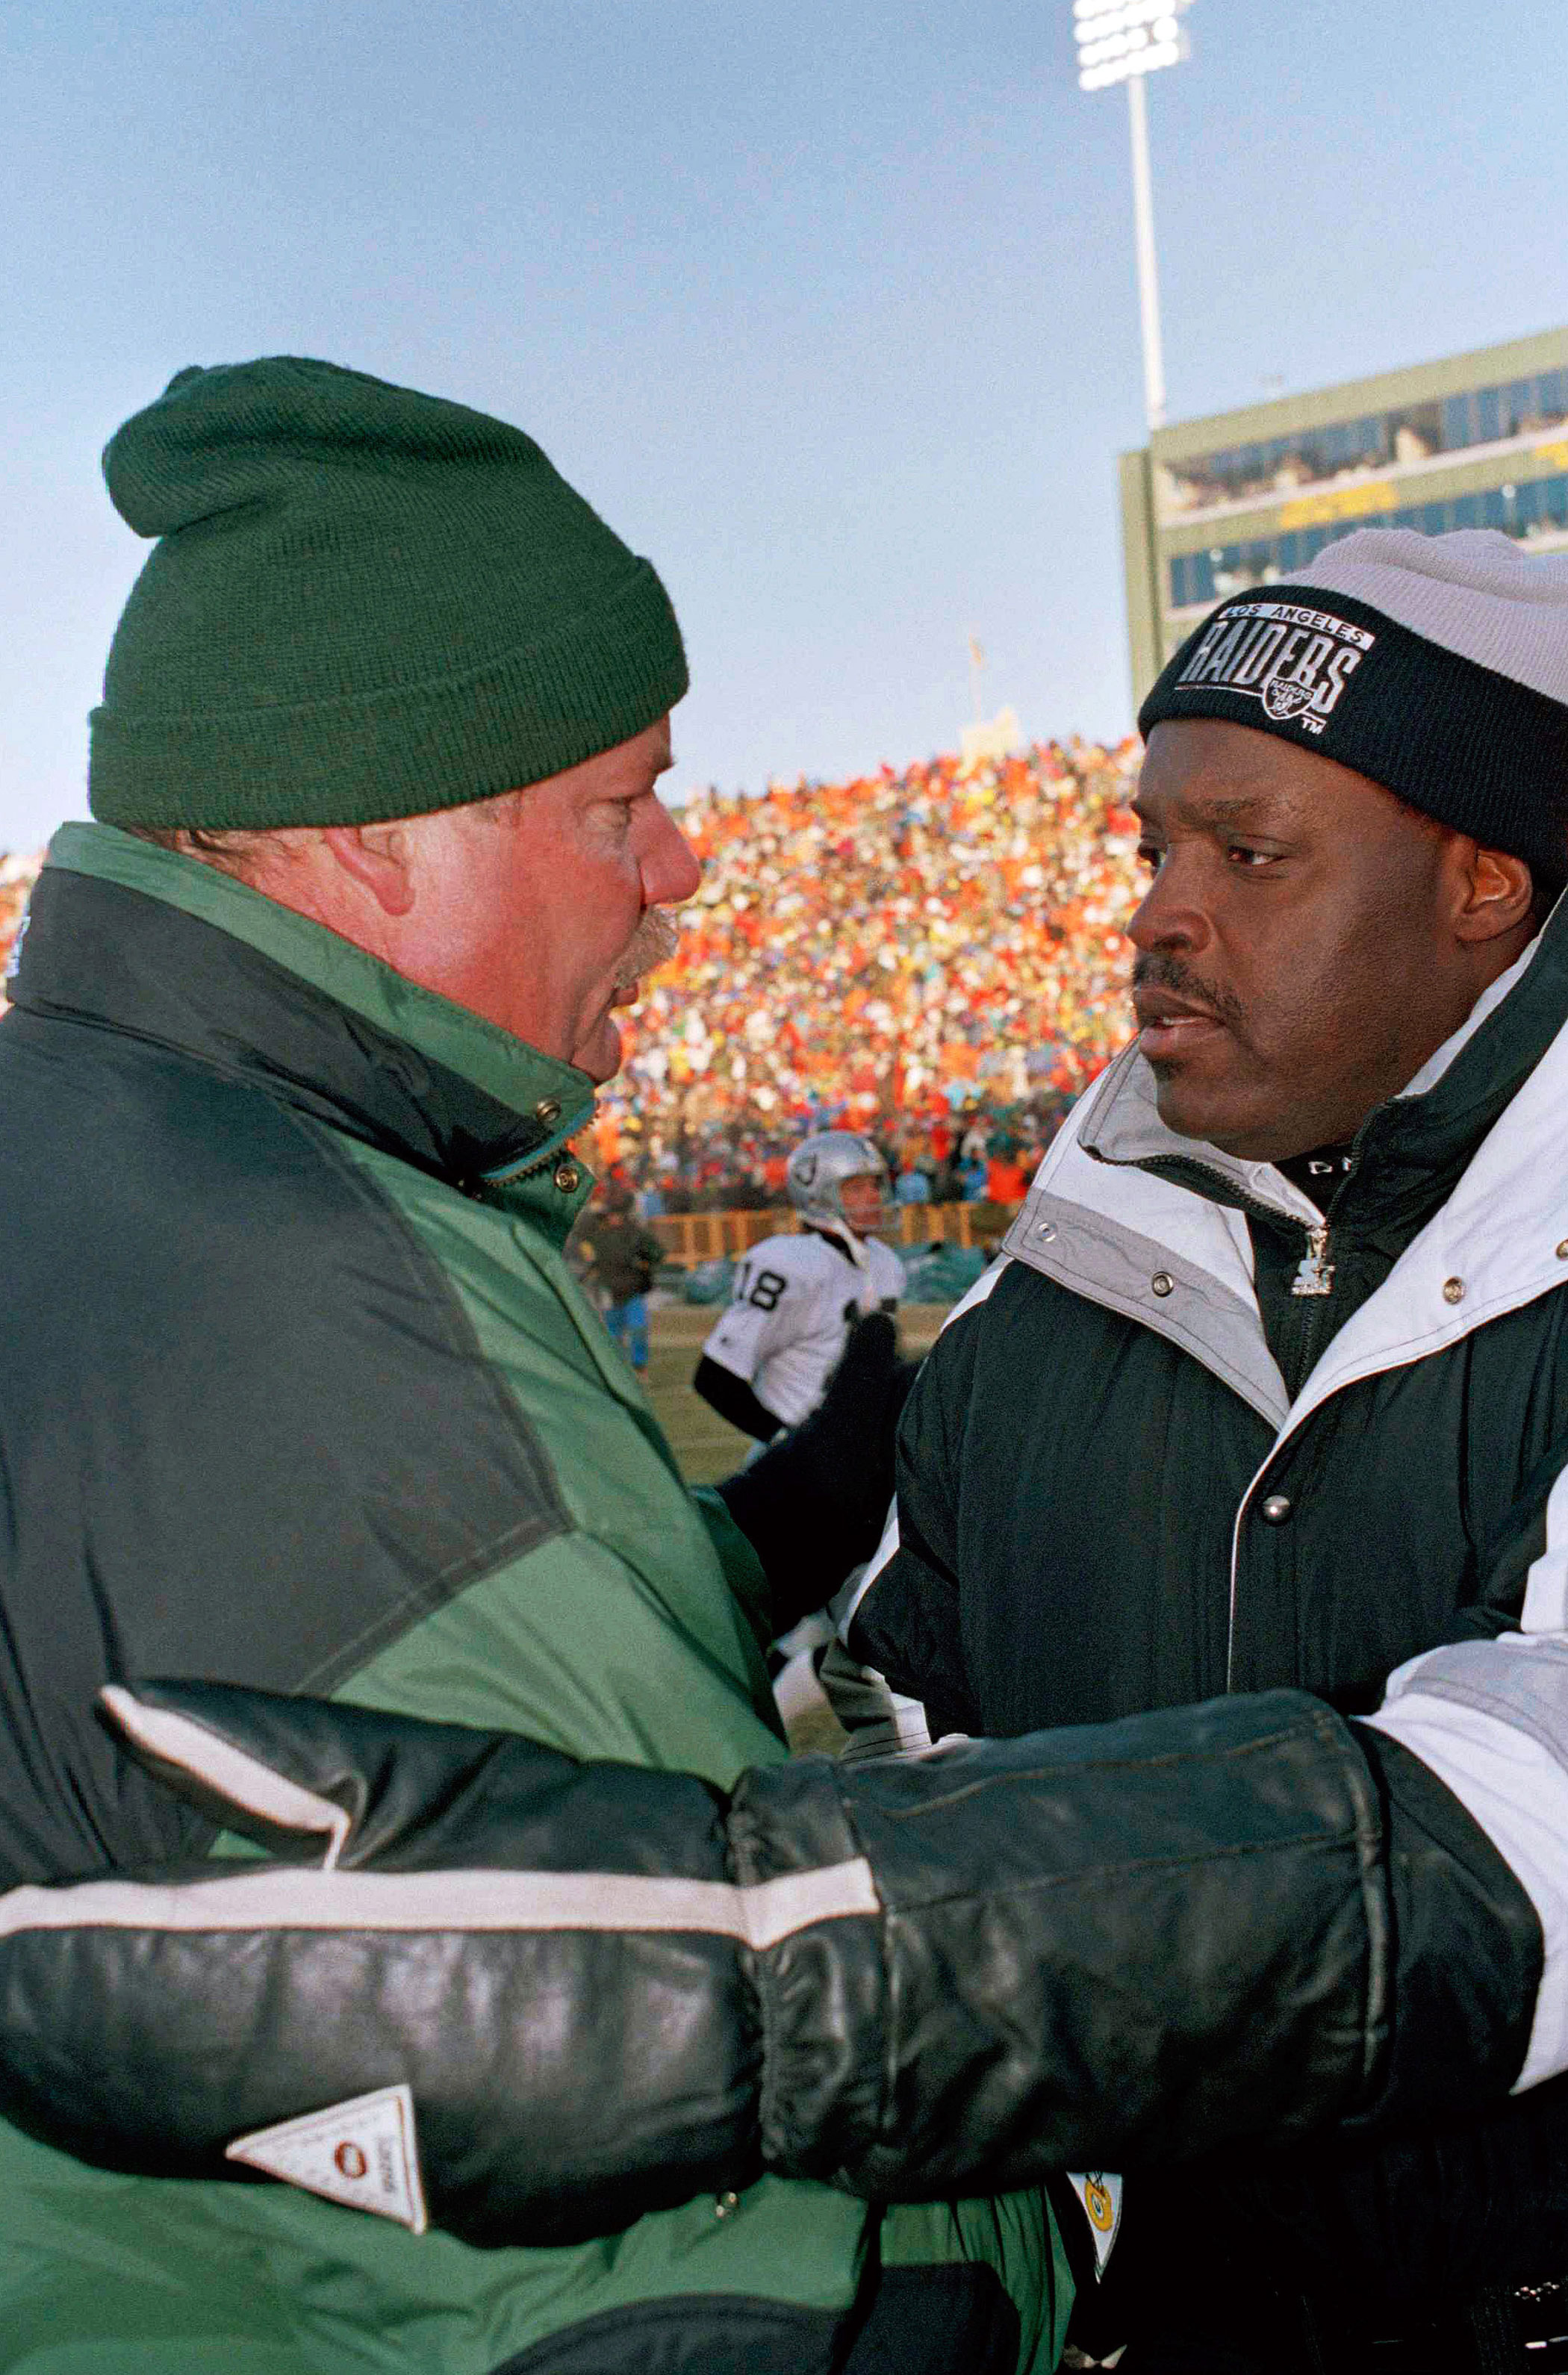 Temperature: 0°F.                               On Dec. 26, 1993, the Green Bay Packers faced the Los Angeles Raiders in an NFL football game. Here, coaches Mike Holmgran and Art Shell greet each other in Green Bay, Wis.